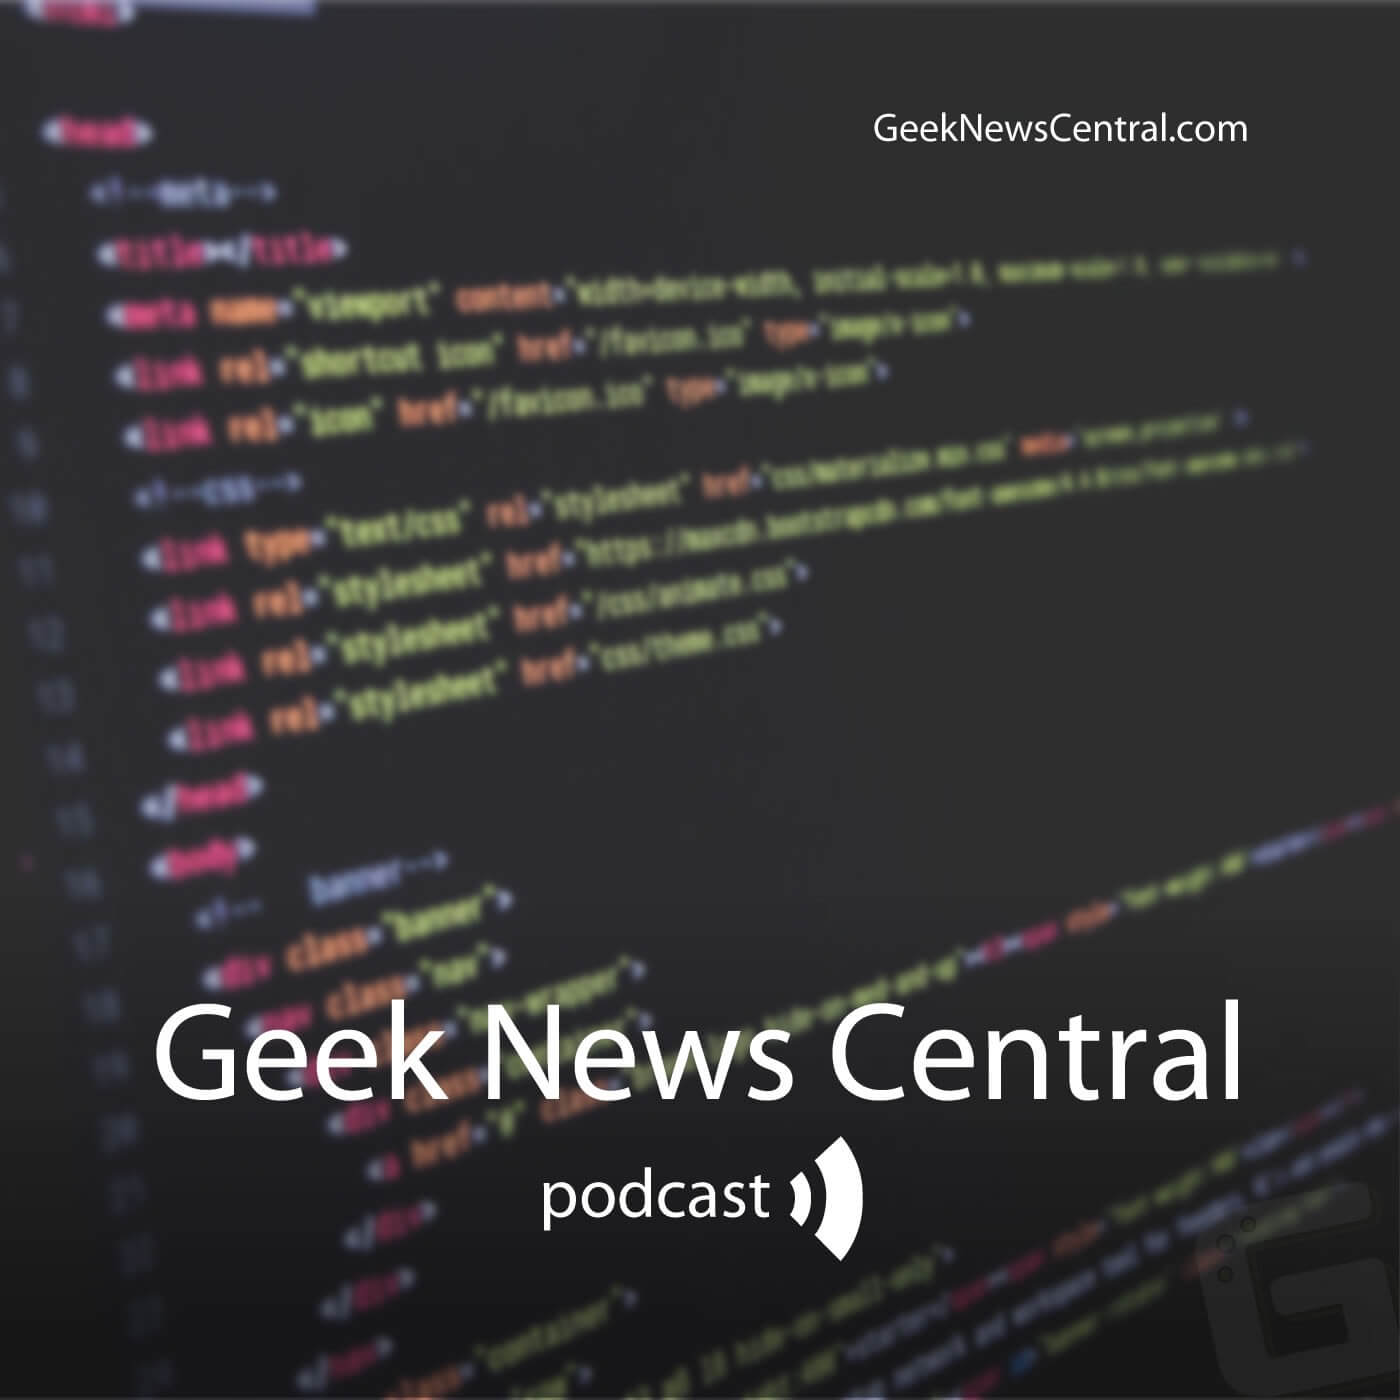 Geek News Central - Geek News: Latest Technology, Product Reviews